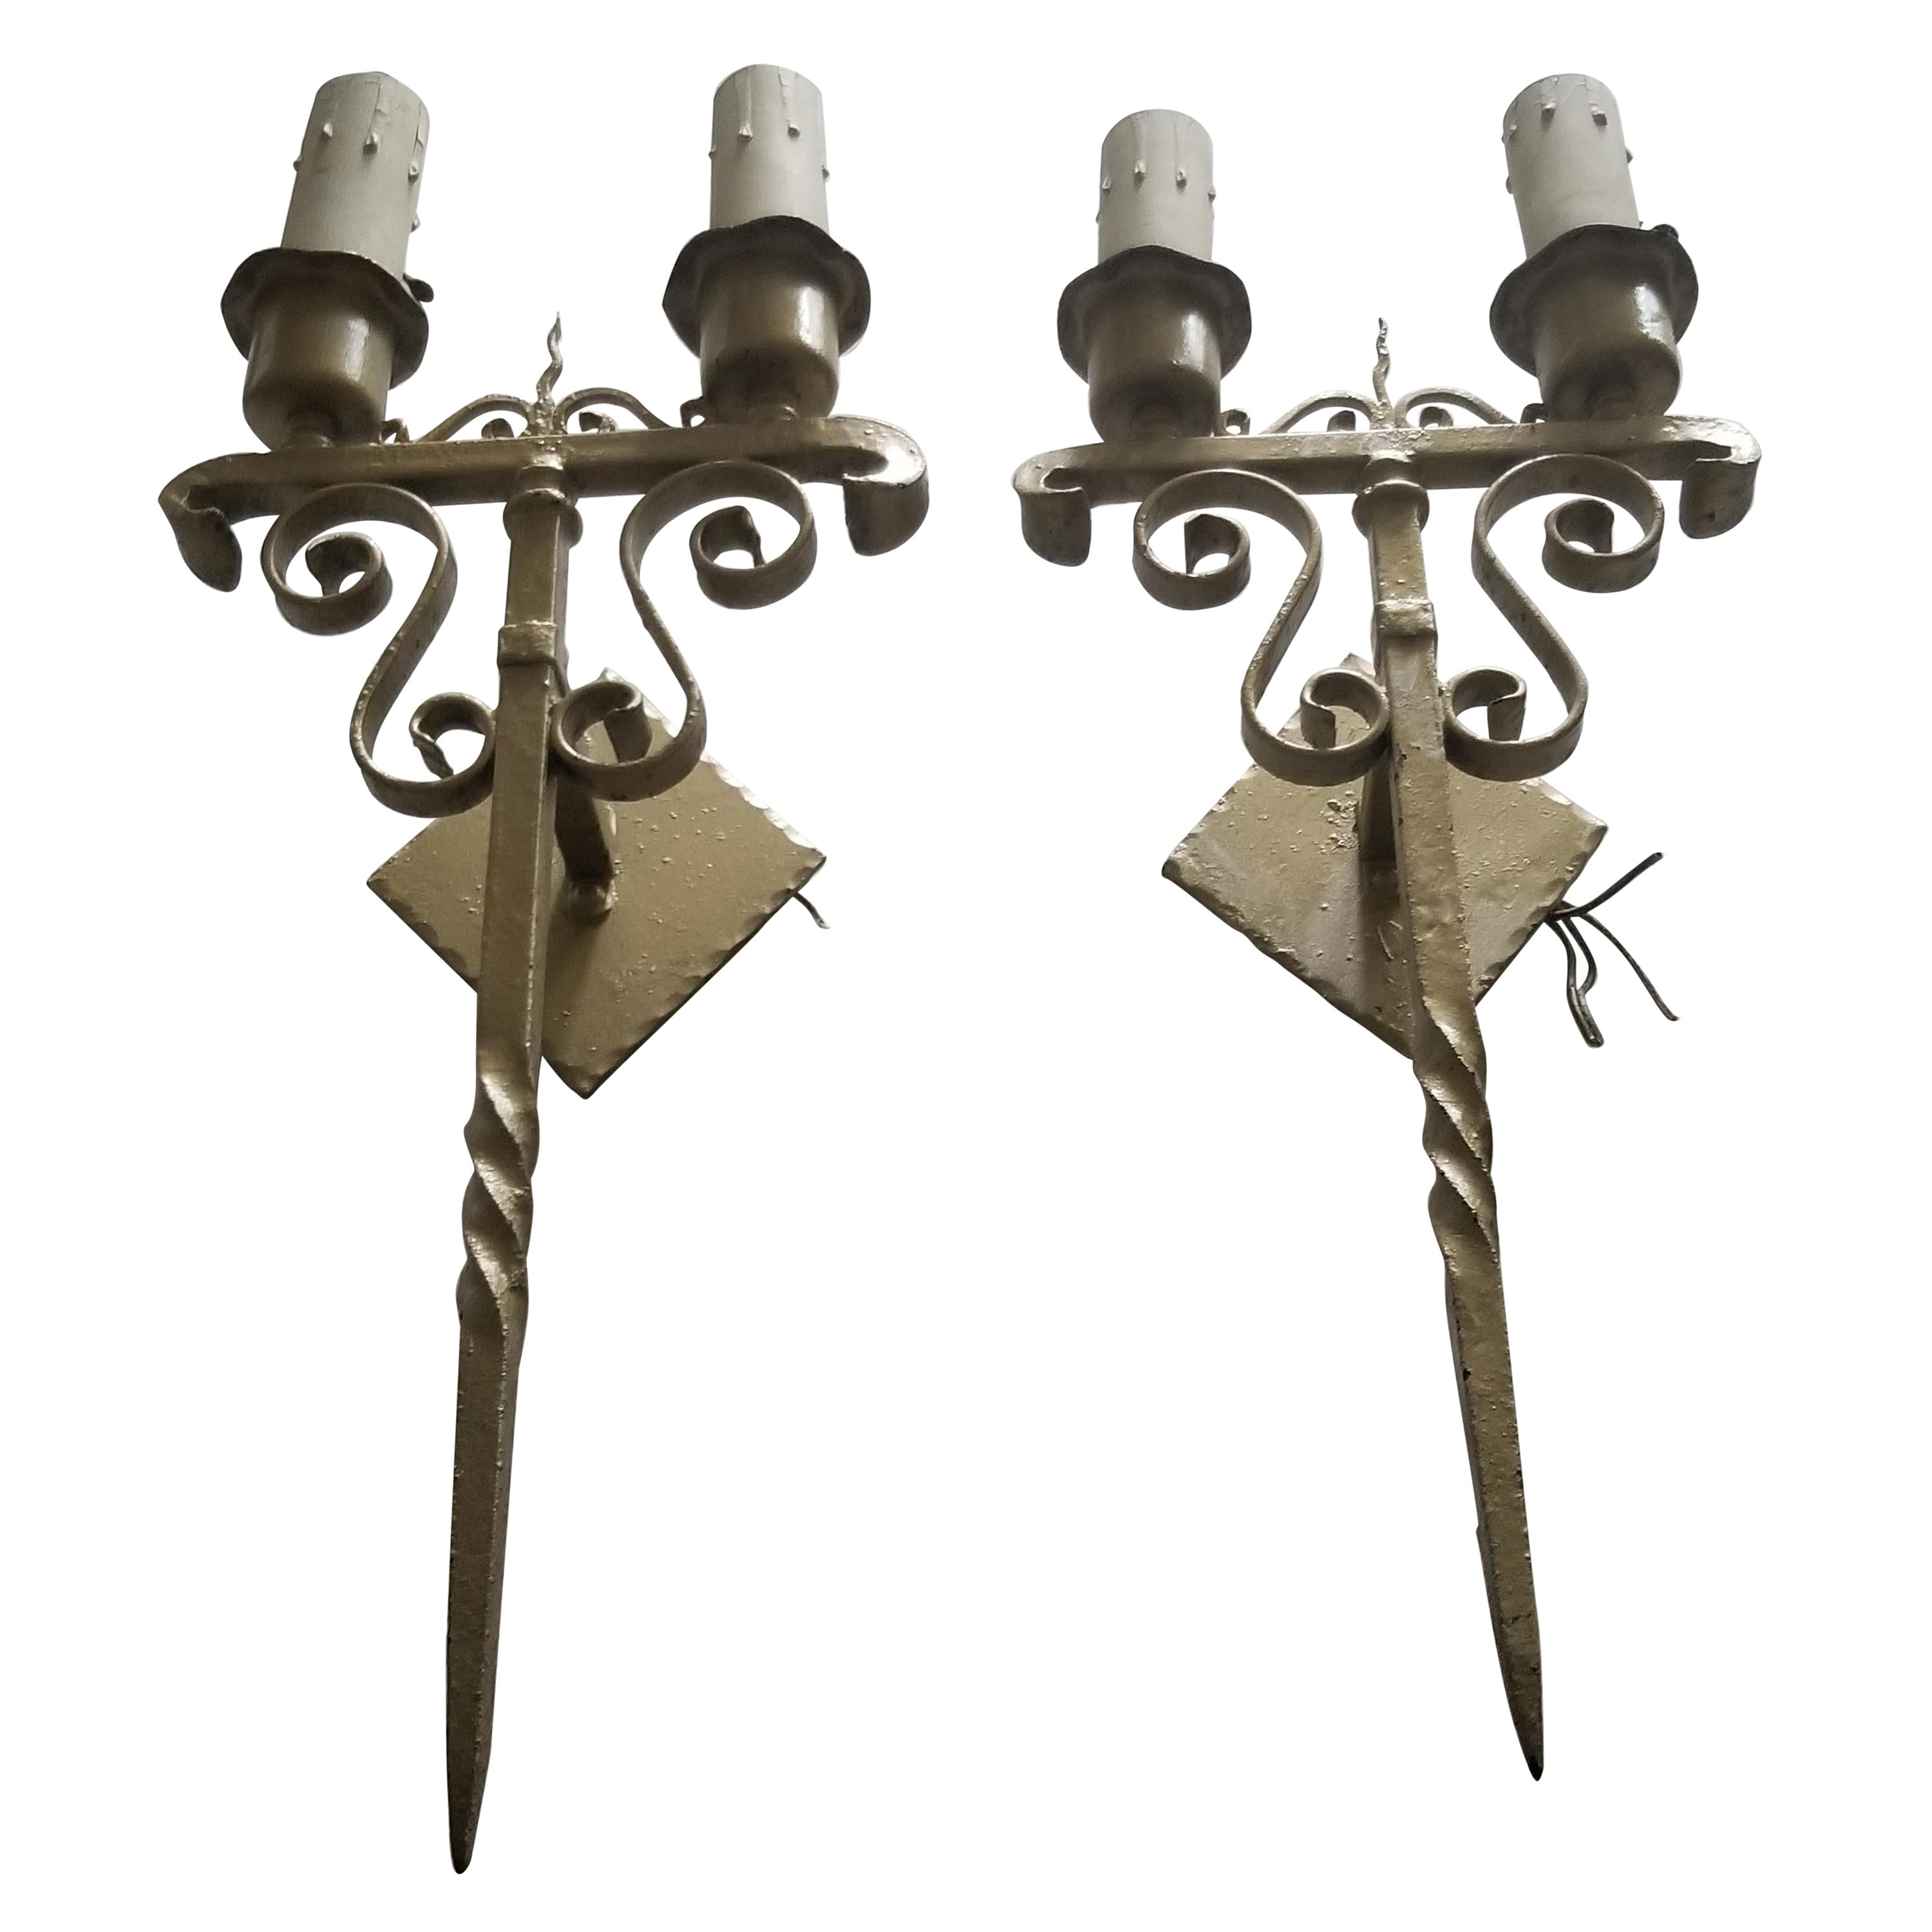 Gold Gothic Wrought Iron Scroll Electric Candelabra Candle Wall Sconces 1960s